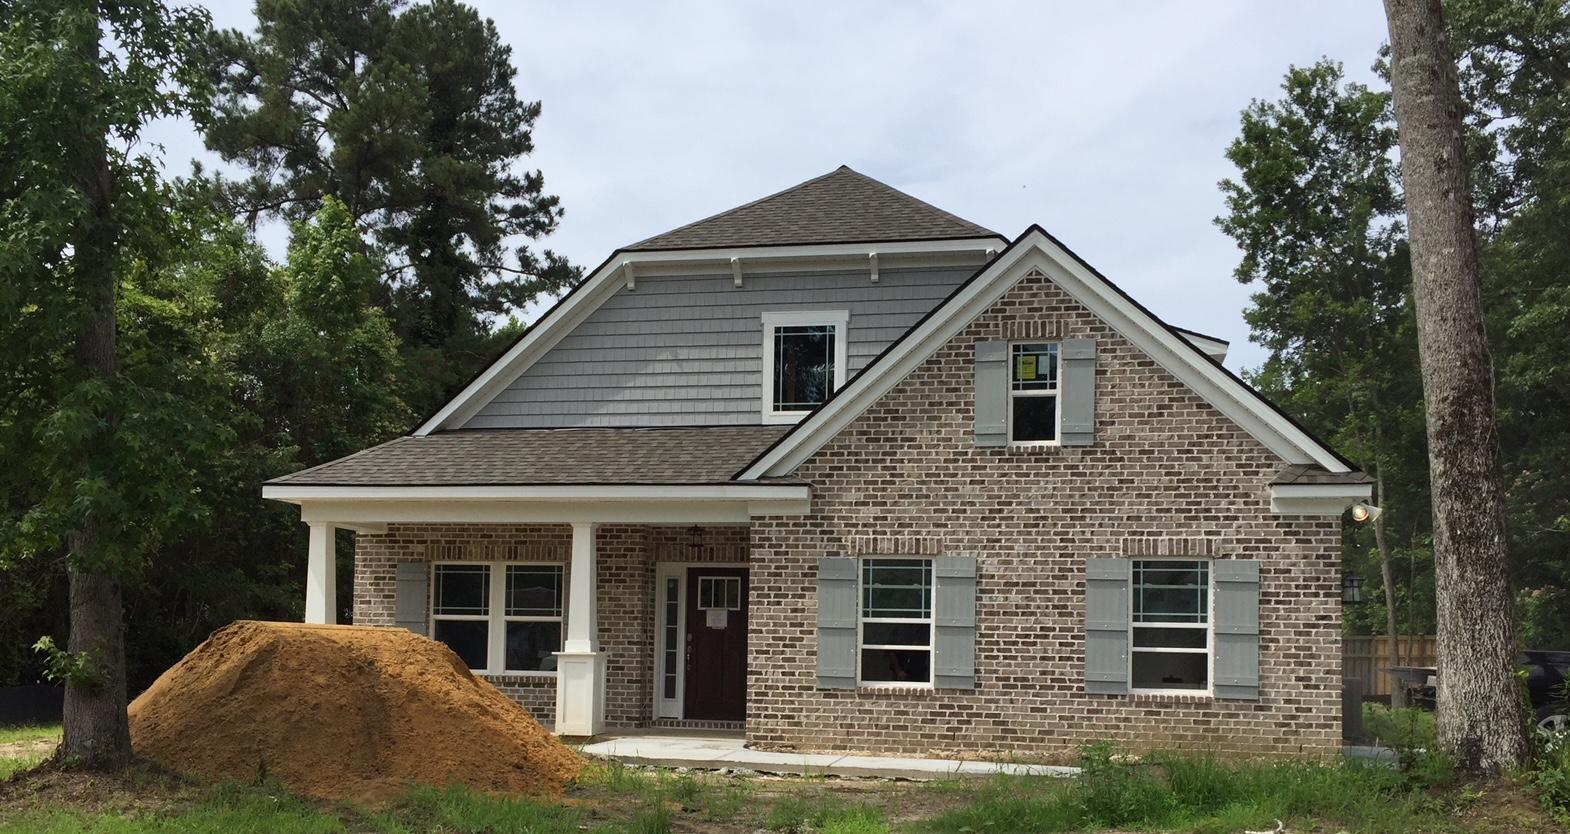 Photo of 1005 Baker Dr, Moncks Corner, SC 29461